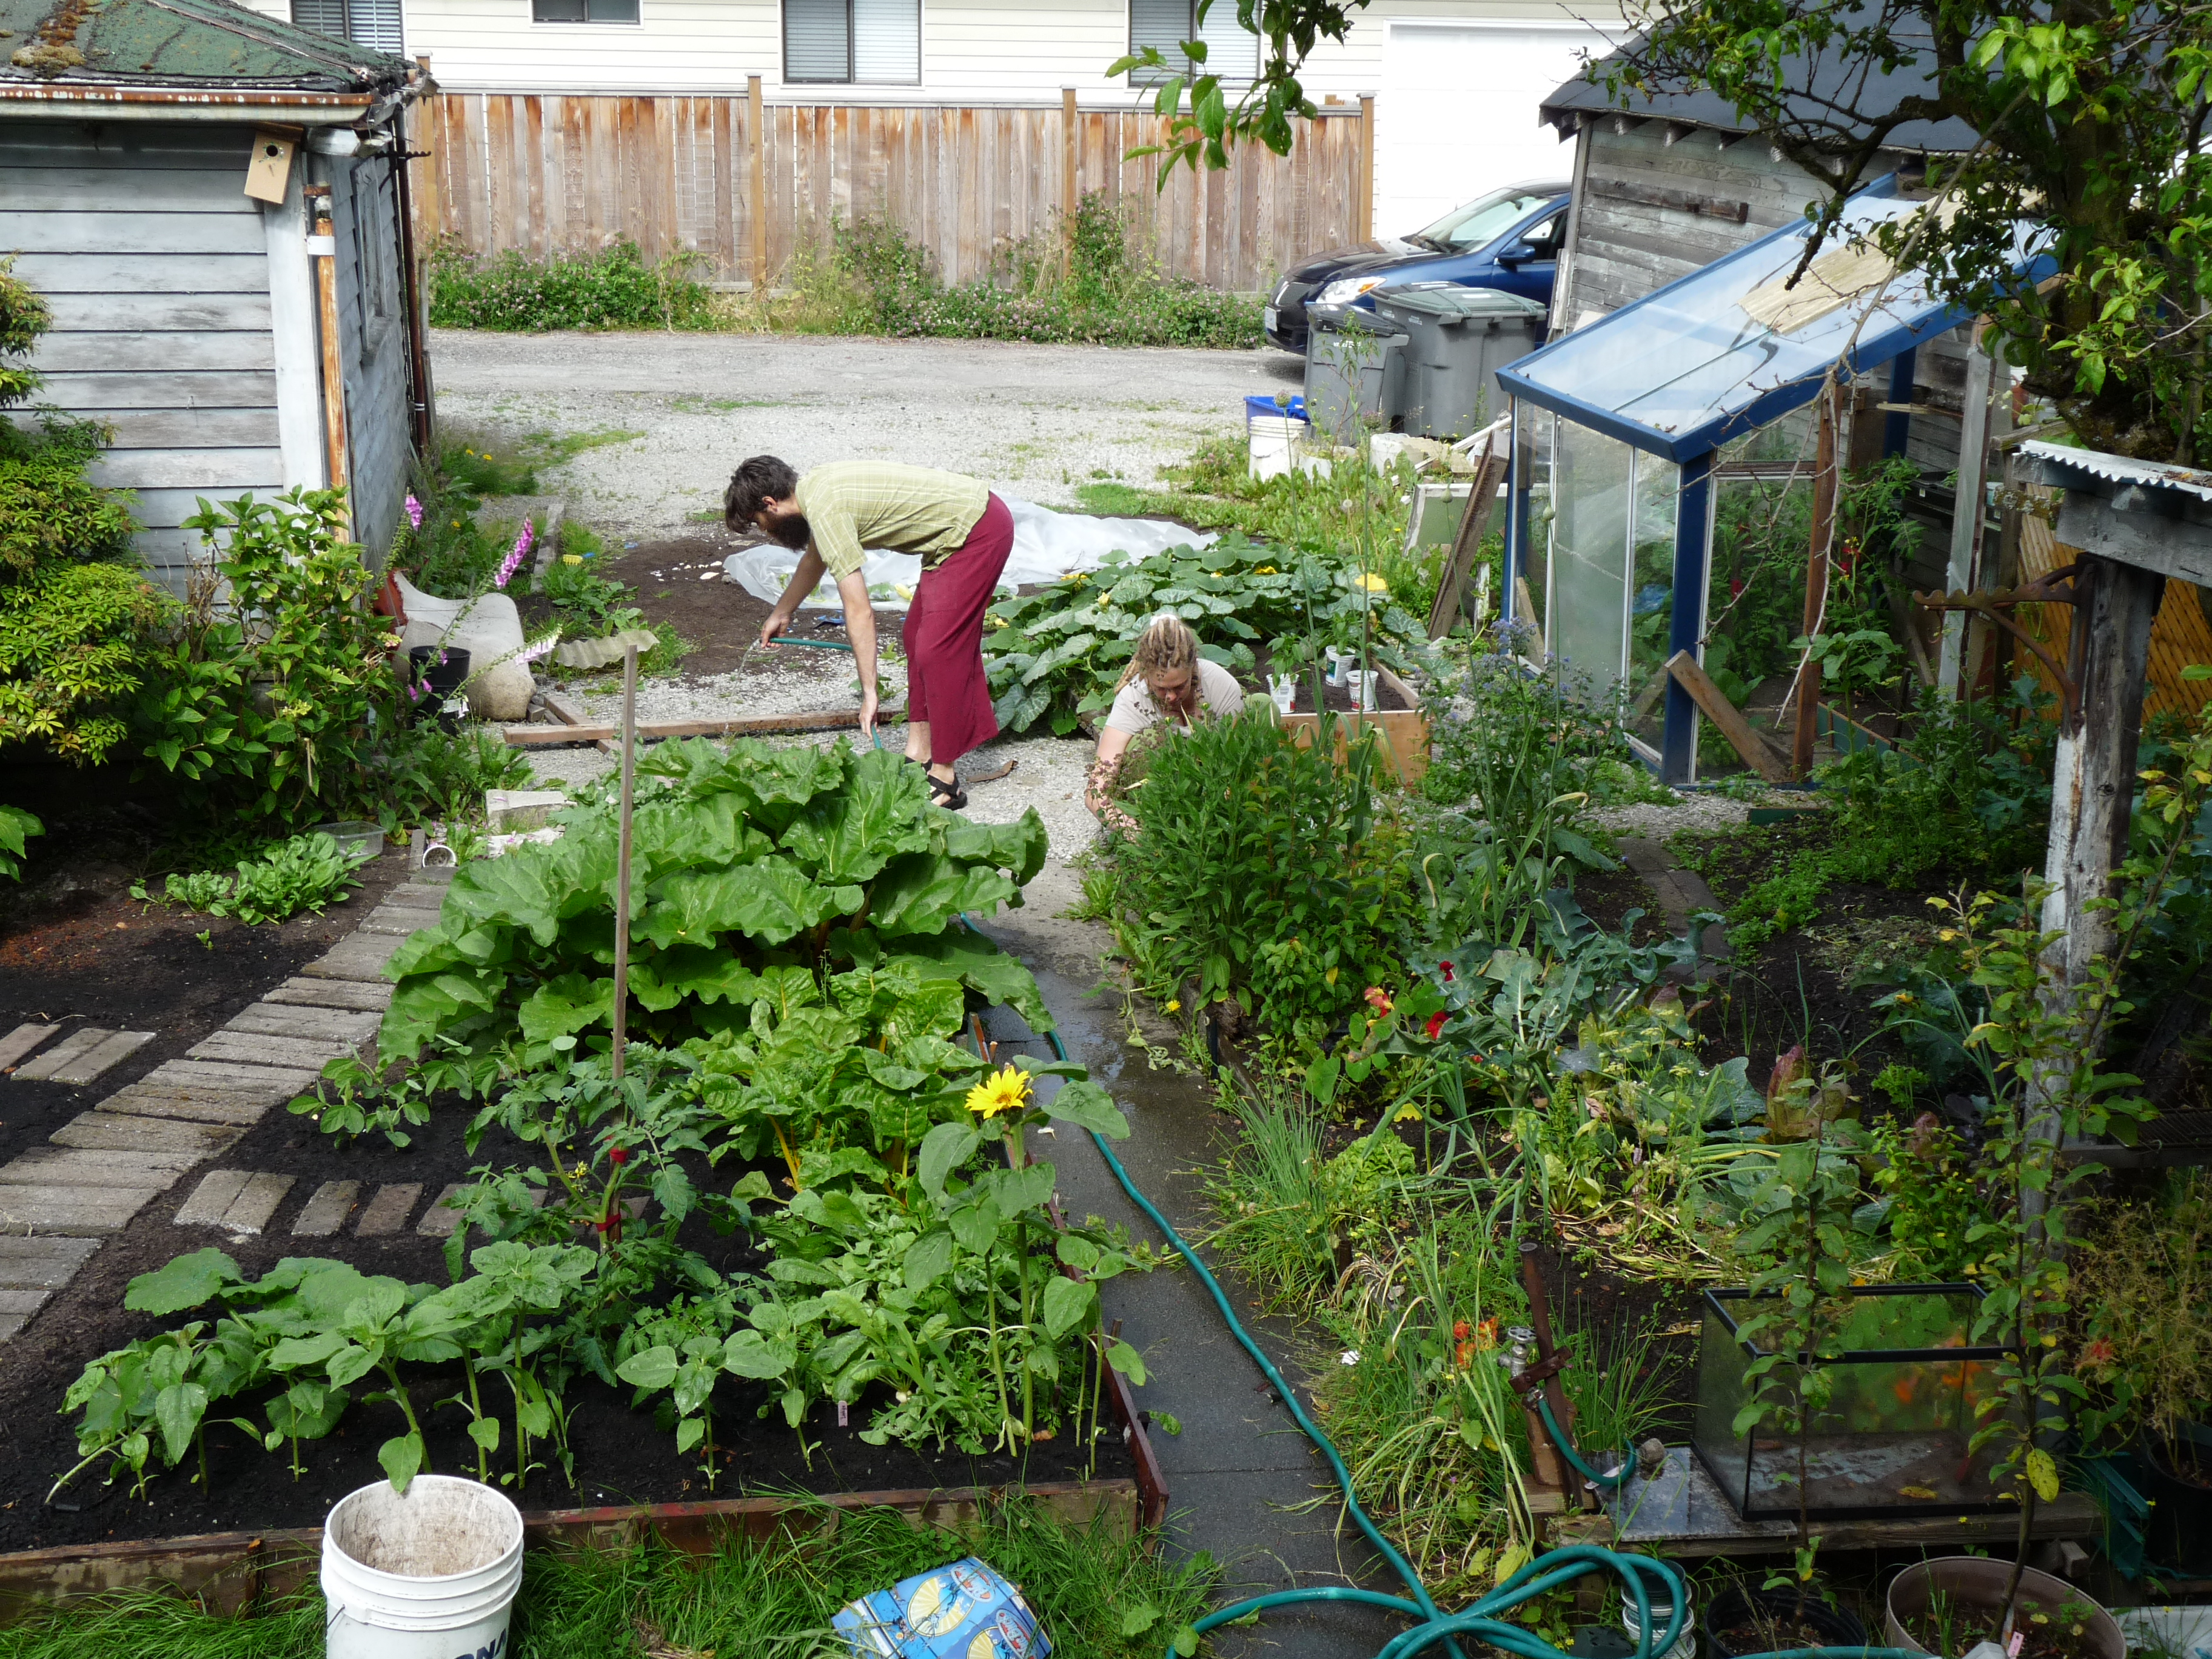 1000+ images about Permaculture backyard gardens! on ... on Backyard Permaculture Design id=69902